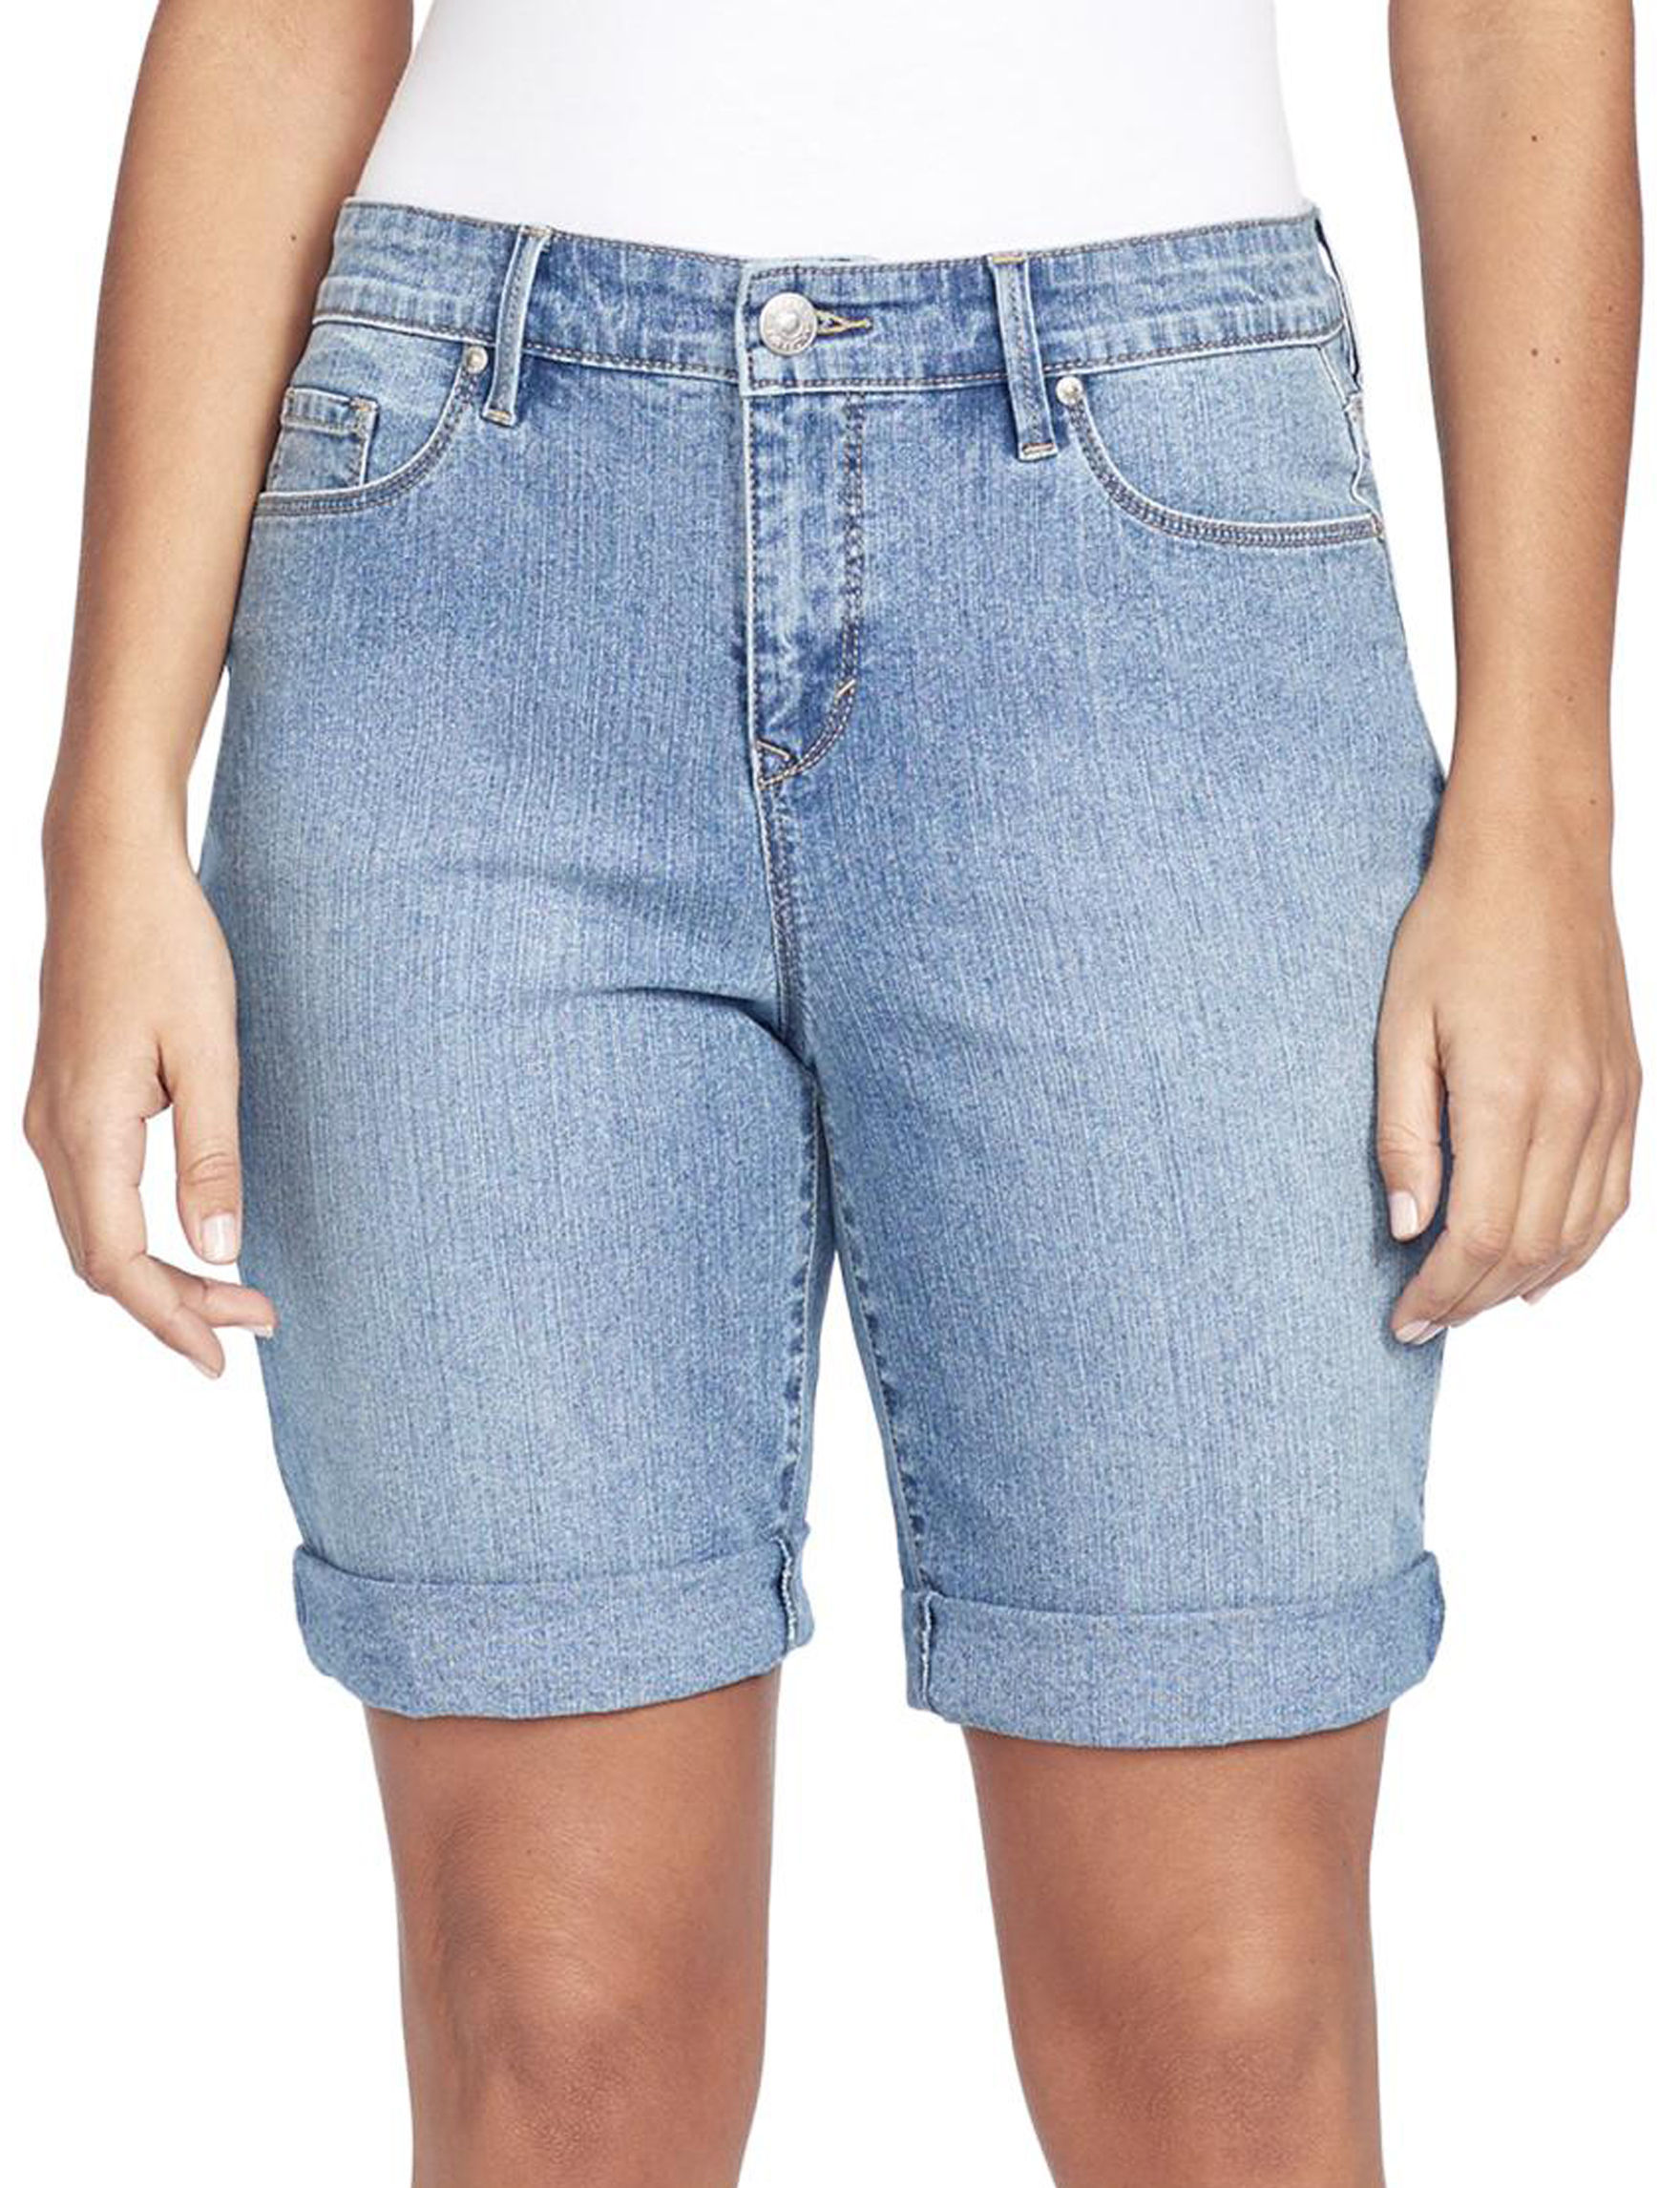 Gloria Vanderbilt Blue Denim Shorts